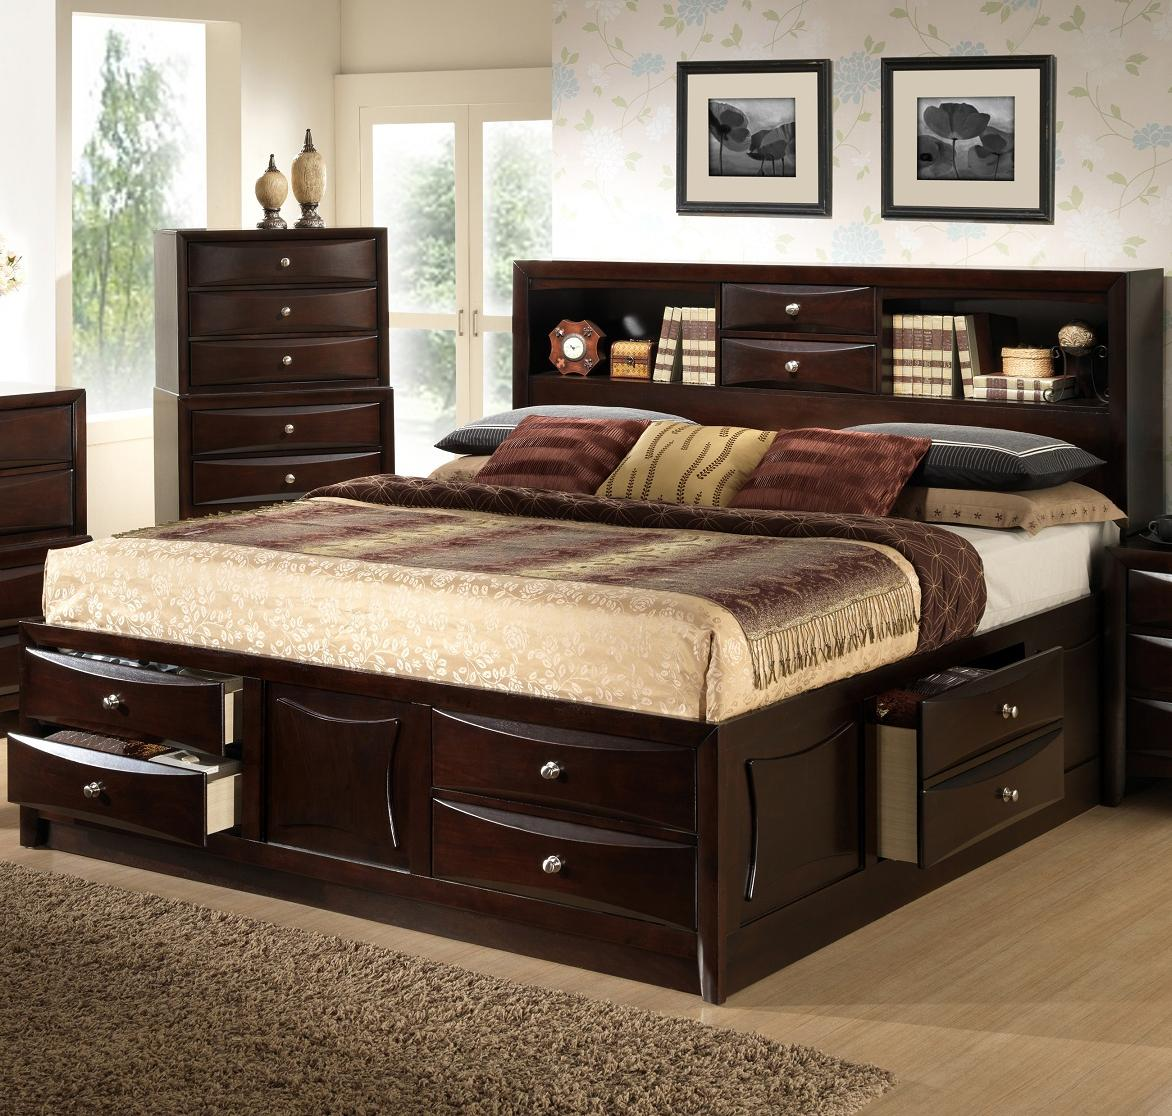 Lifestyle Todd King California King Storage Bed W